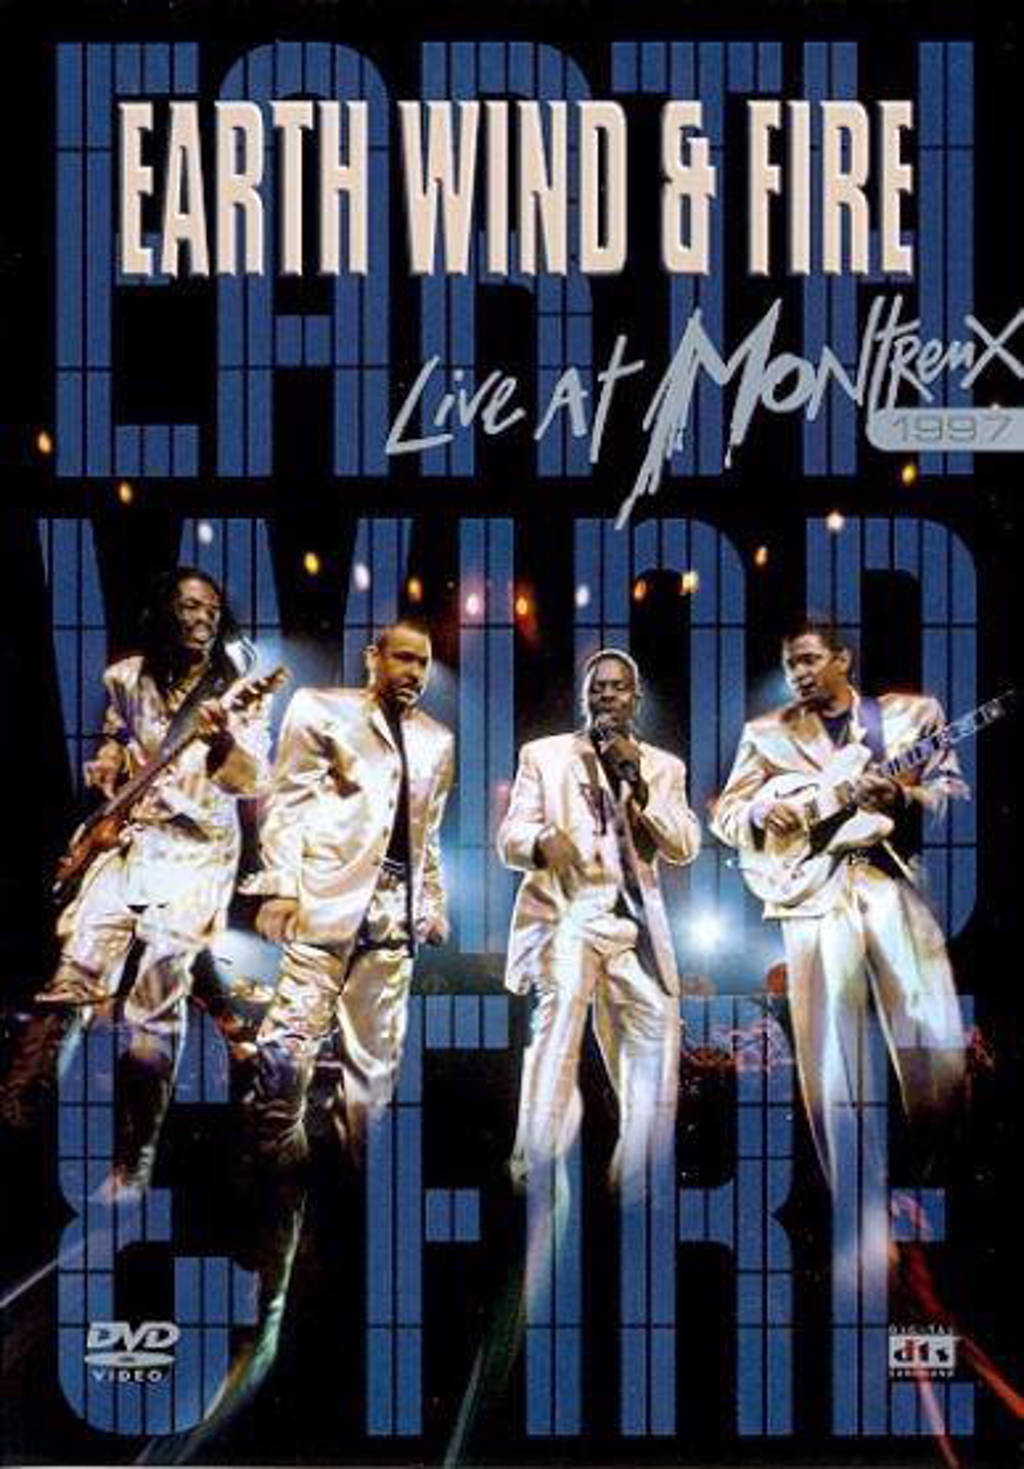 Earth wind & fire - Live Montreux (DVD)